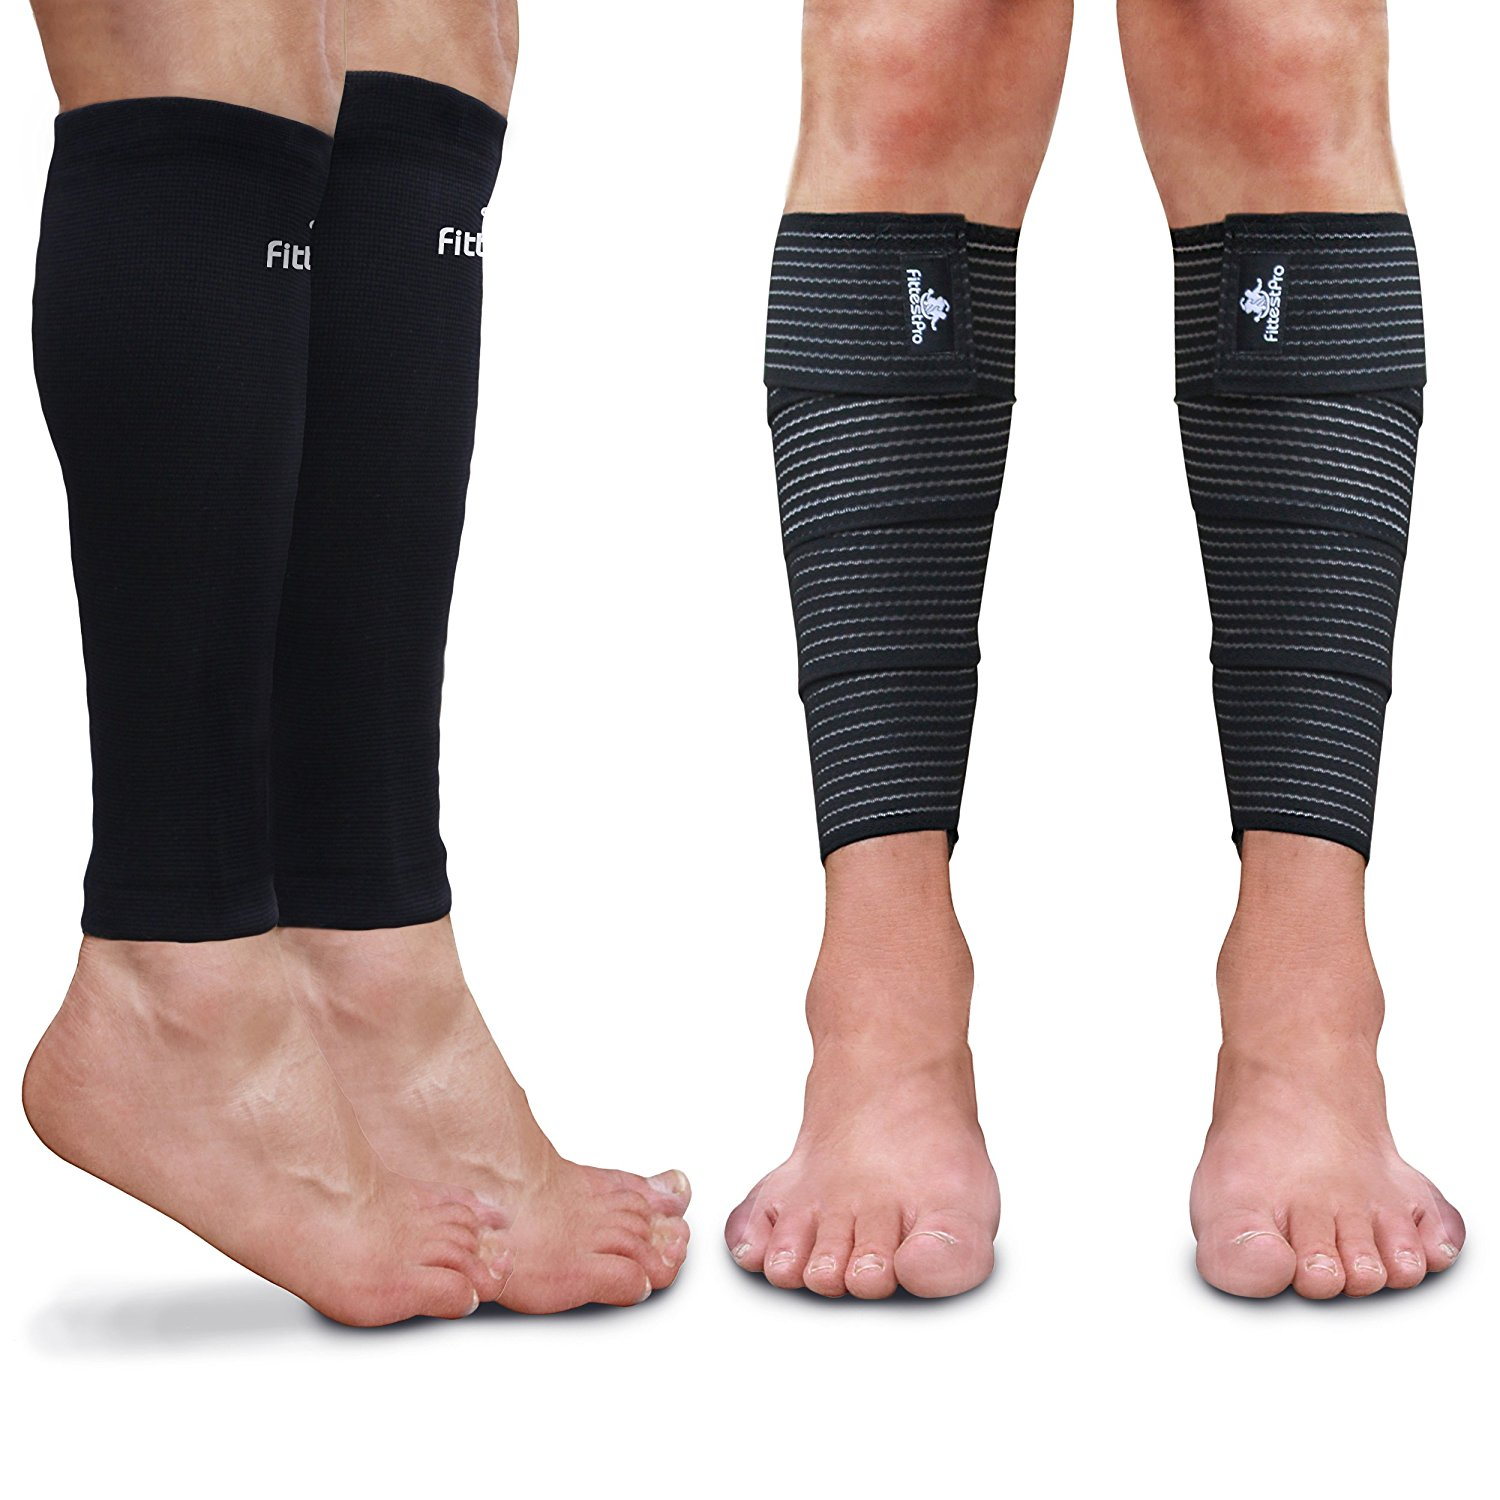 2dbbe7d28a Calf Sleeve Package (Pack of 4) - Calf Compression Sleeve (1 Pair) And Calf  Wraps (1 Pair) - Calf Guard For Men And Women - True Leg Graduated  Compression ...